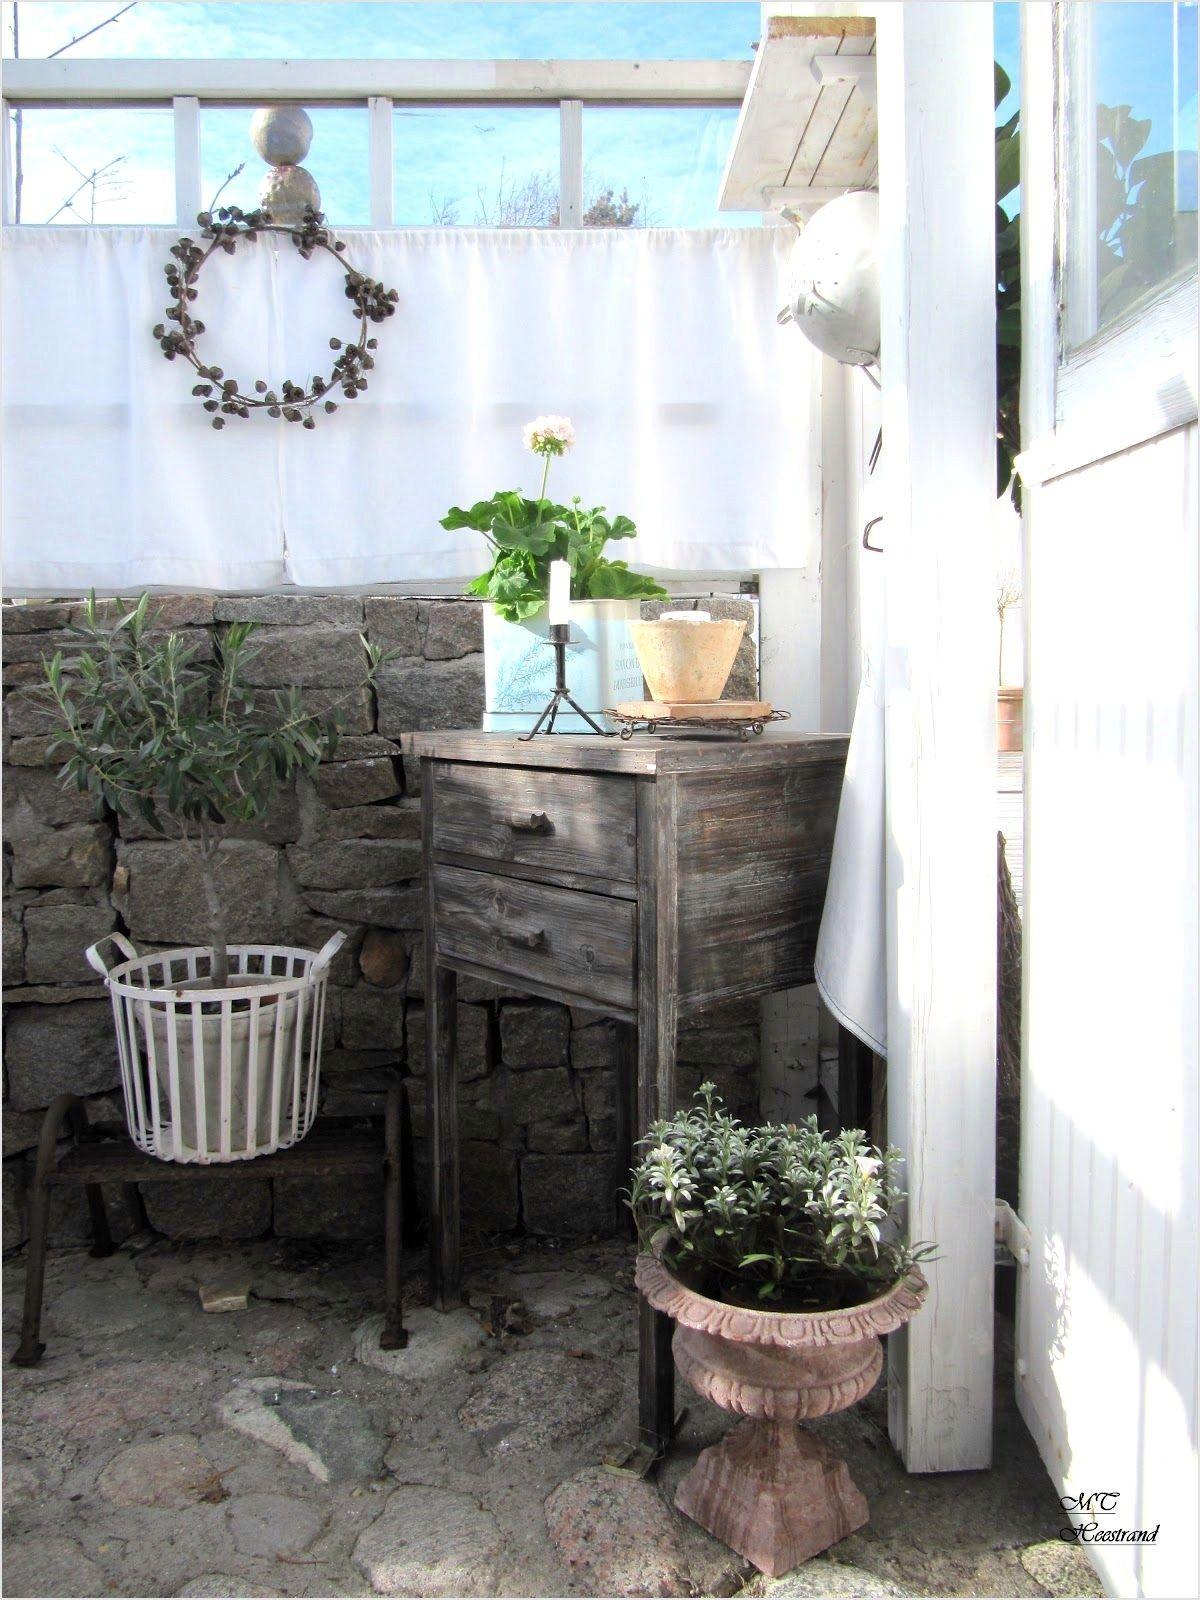 42 beautiful rustic outdoor decorating ideas 22 inside gazebo outside patio garden whitewashed cottage 5